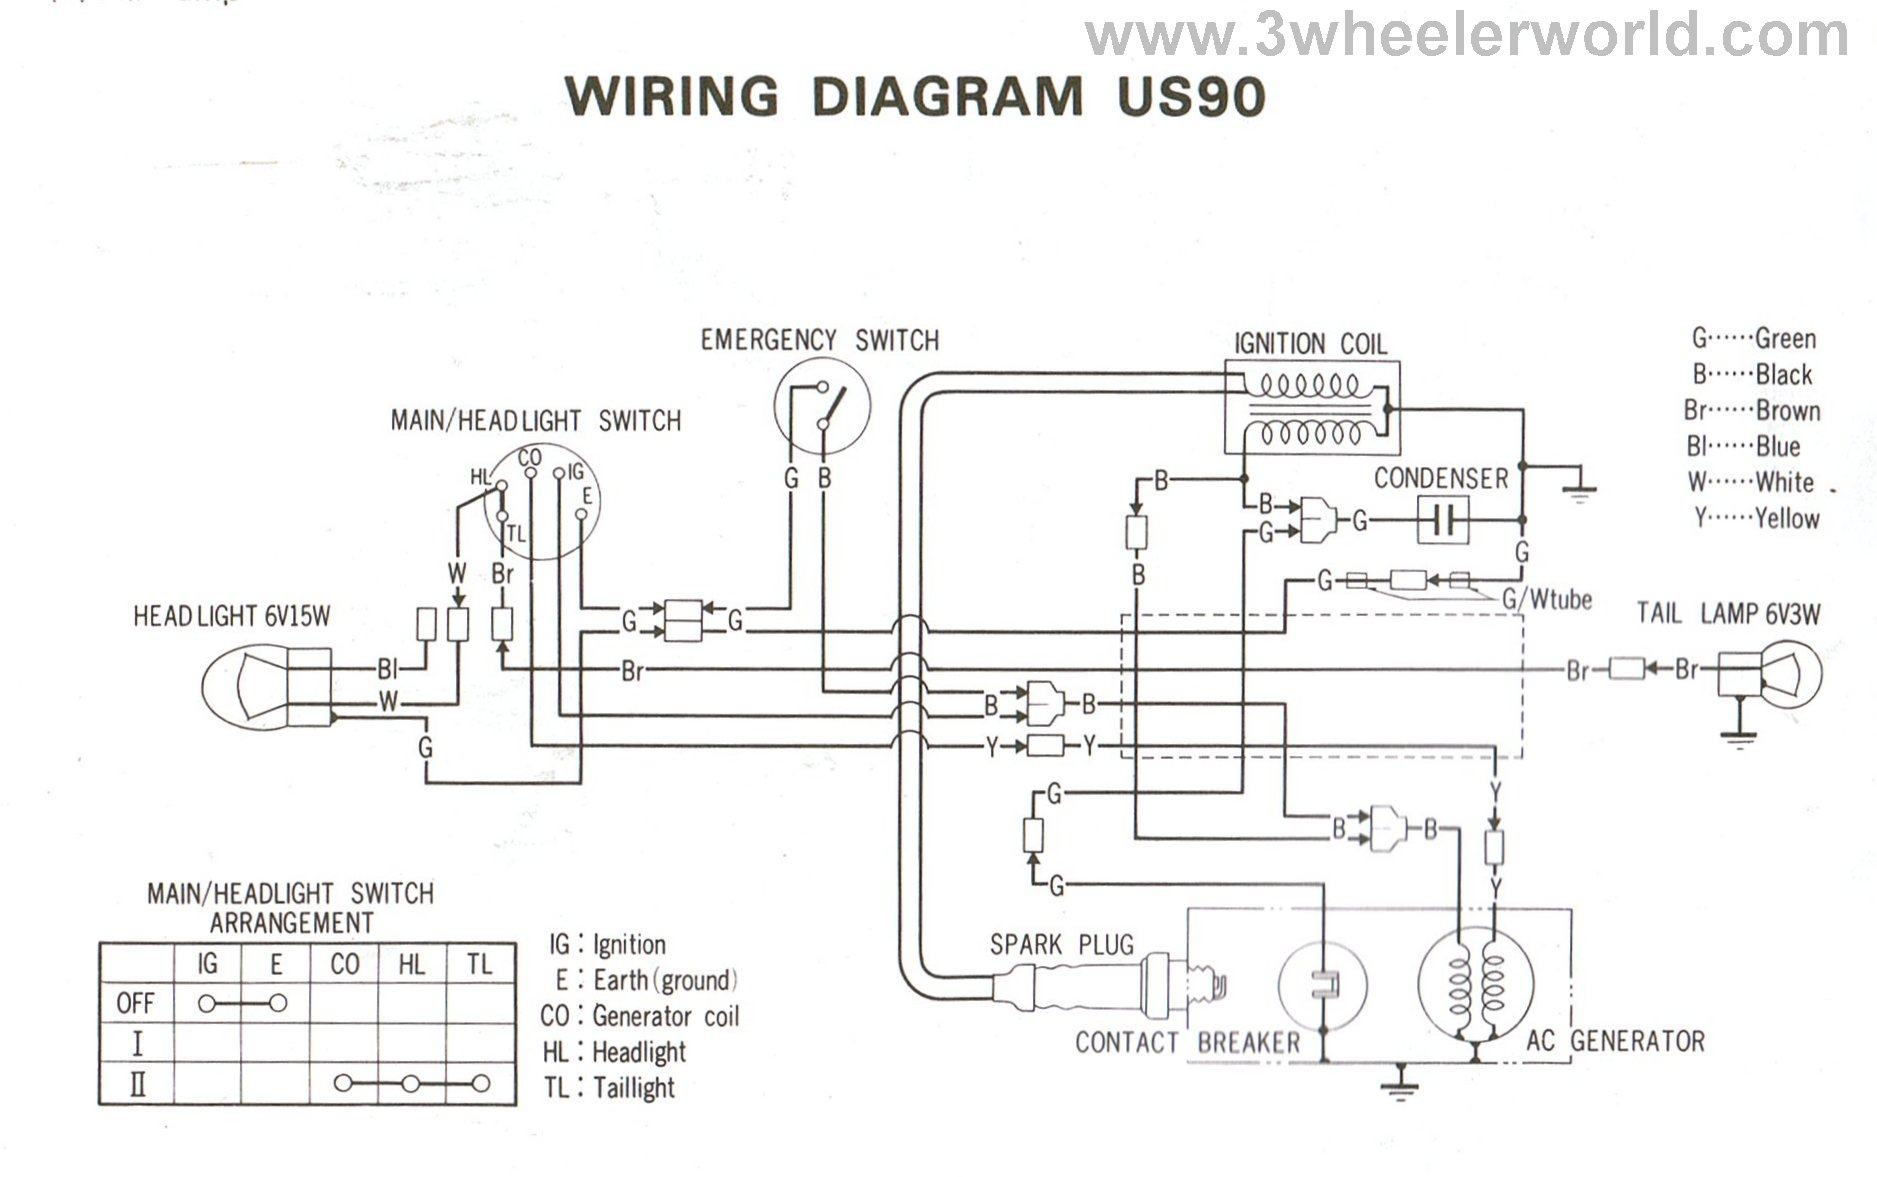 US90HM 3 wheeler world tech help honda wiring diagrams 2001 polaris sportsman 90 wiring diagram at readyjetset.co